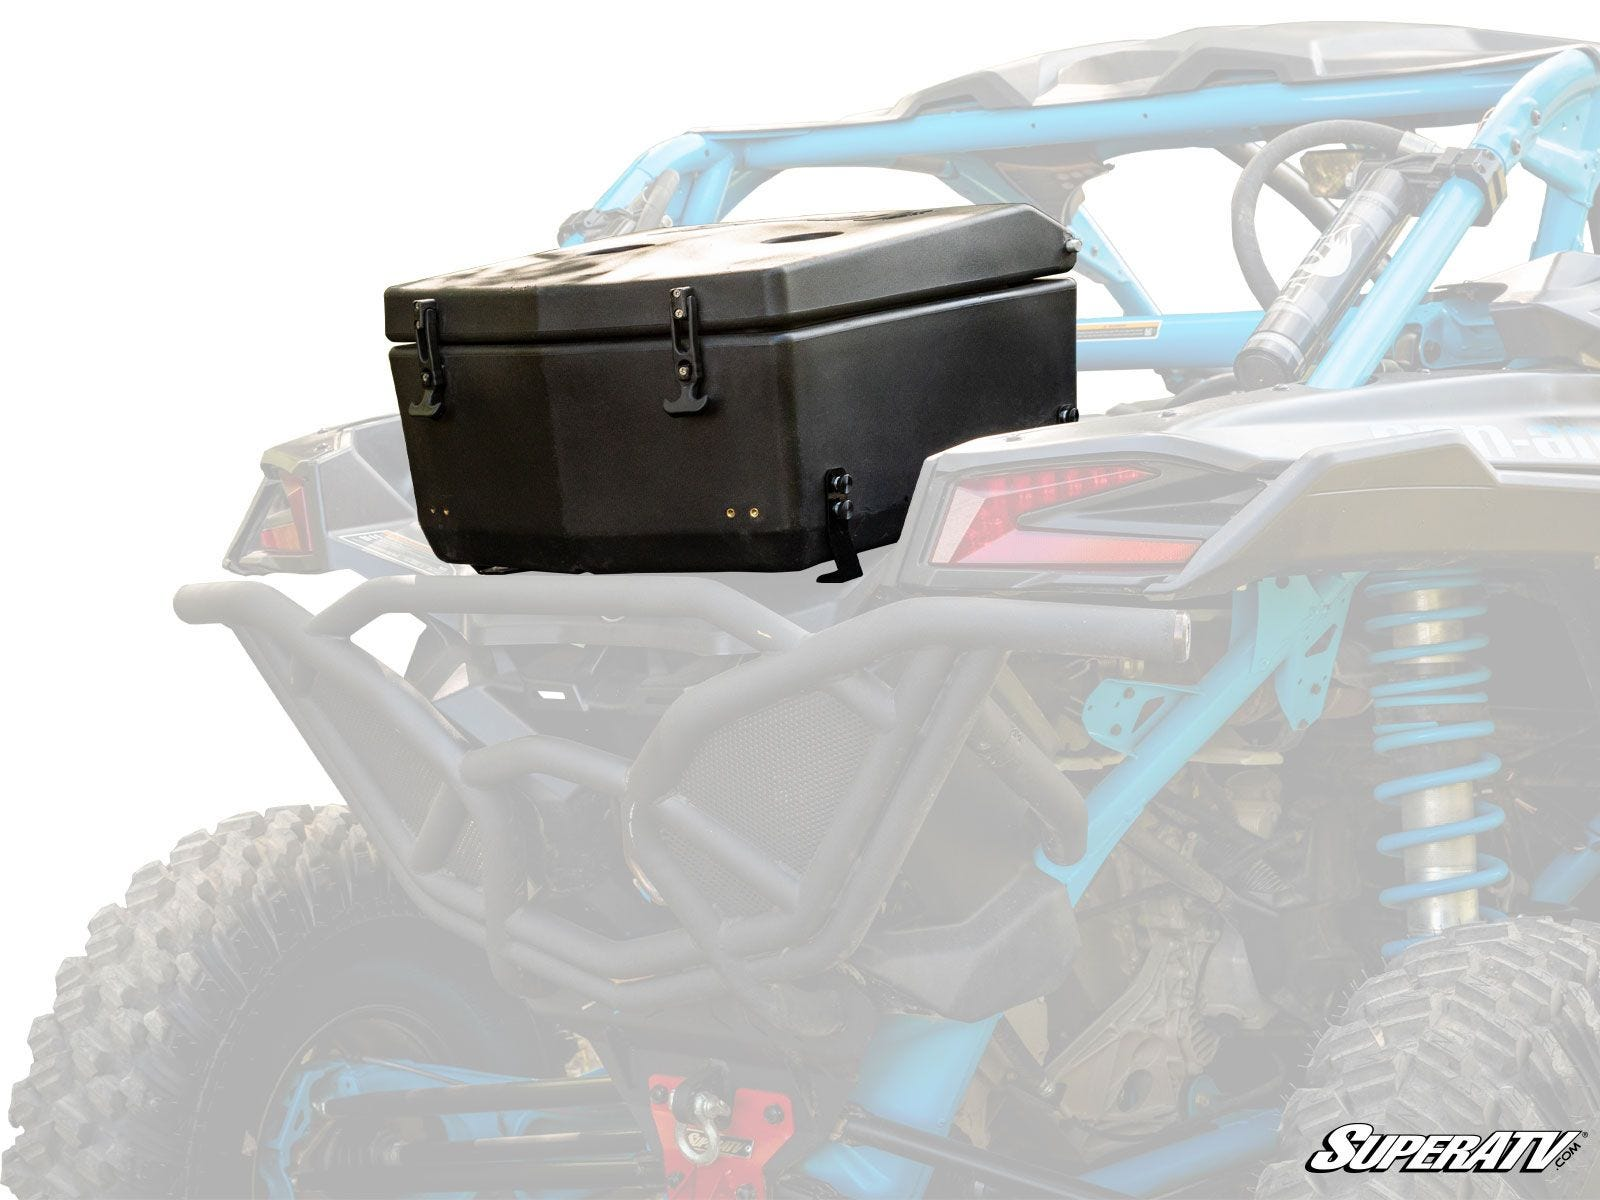 Tremendous Super Atv Rear Insulated Cooler Cargo Box For Can Am Maverick X3 Gmtry Best Dining Table And Chair Ideas Images Gmtryco